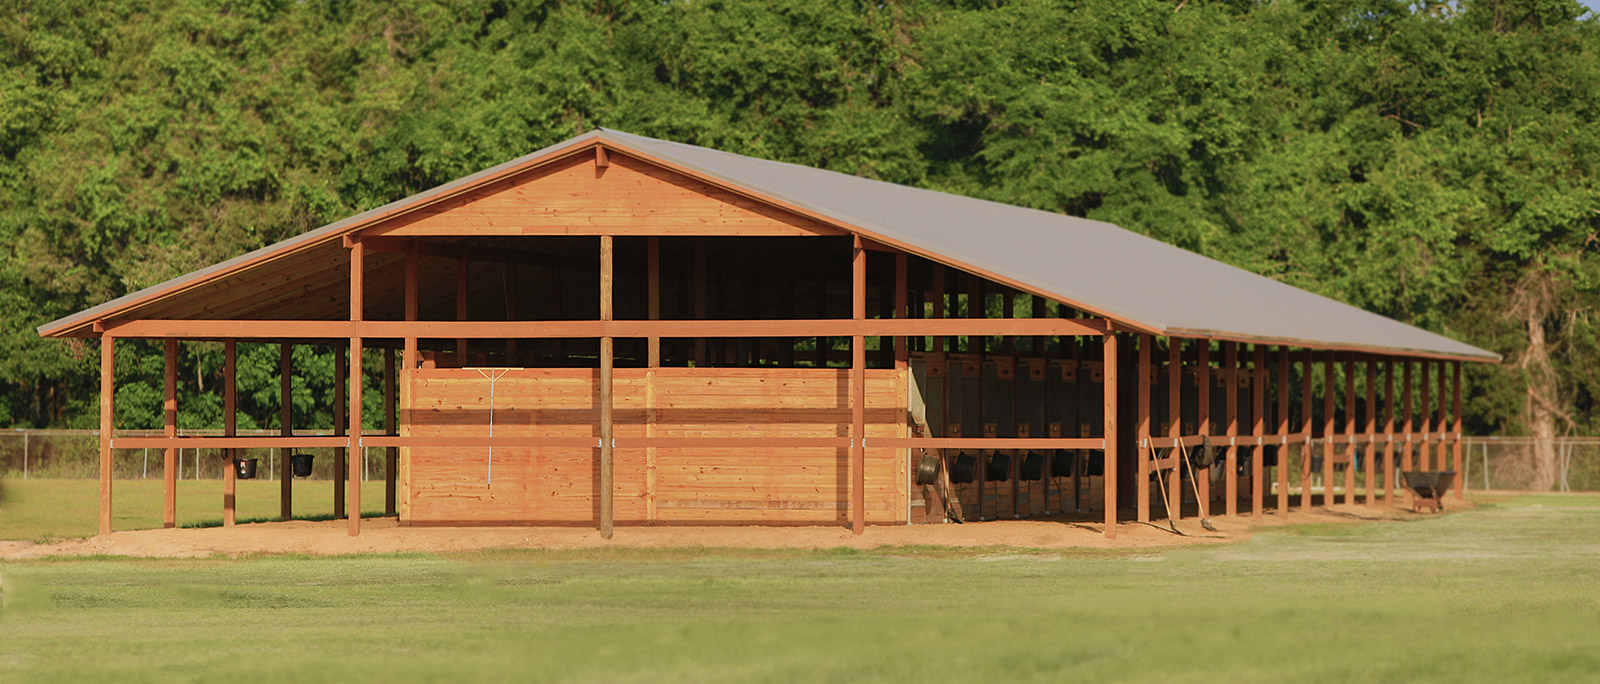 The recently completed stable at the facility